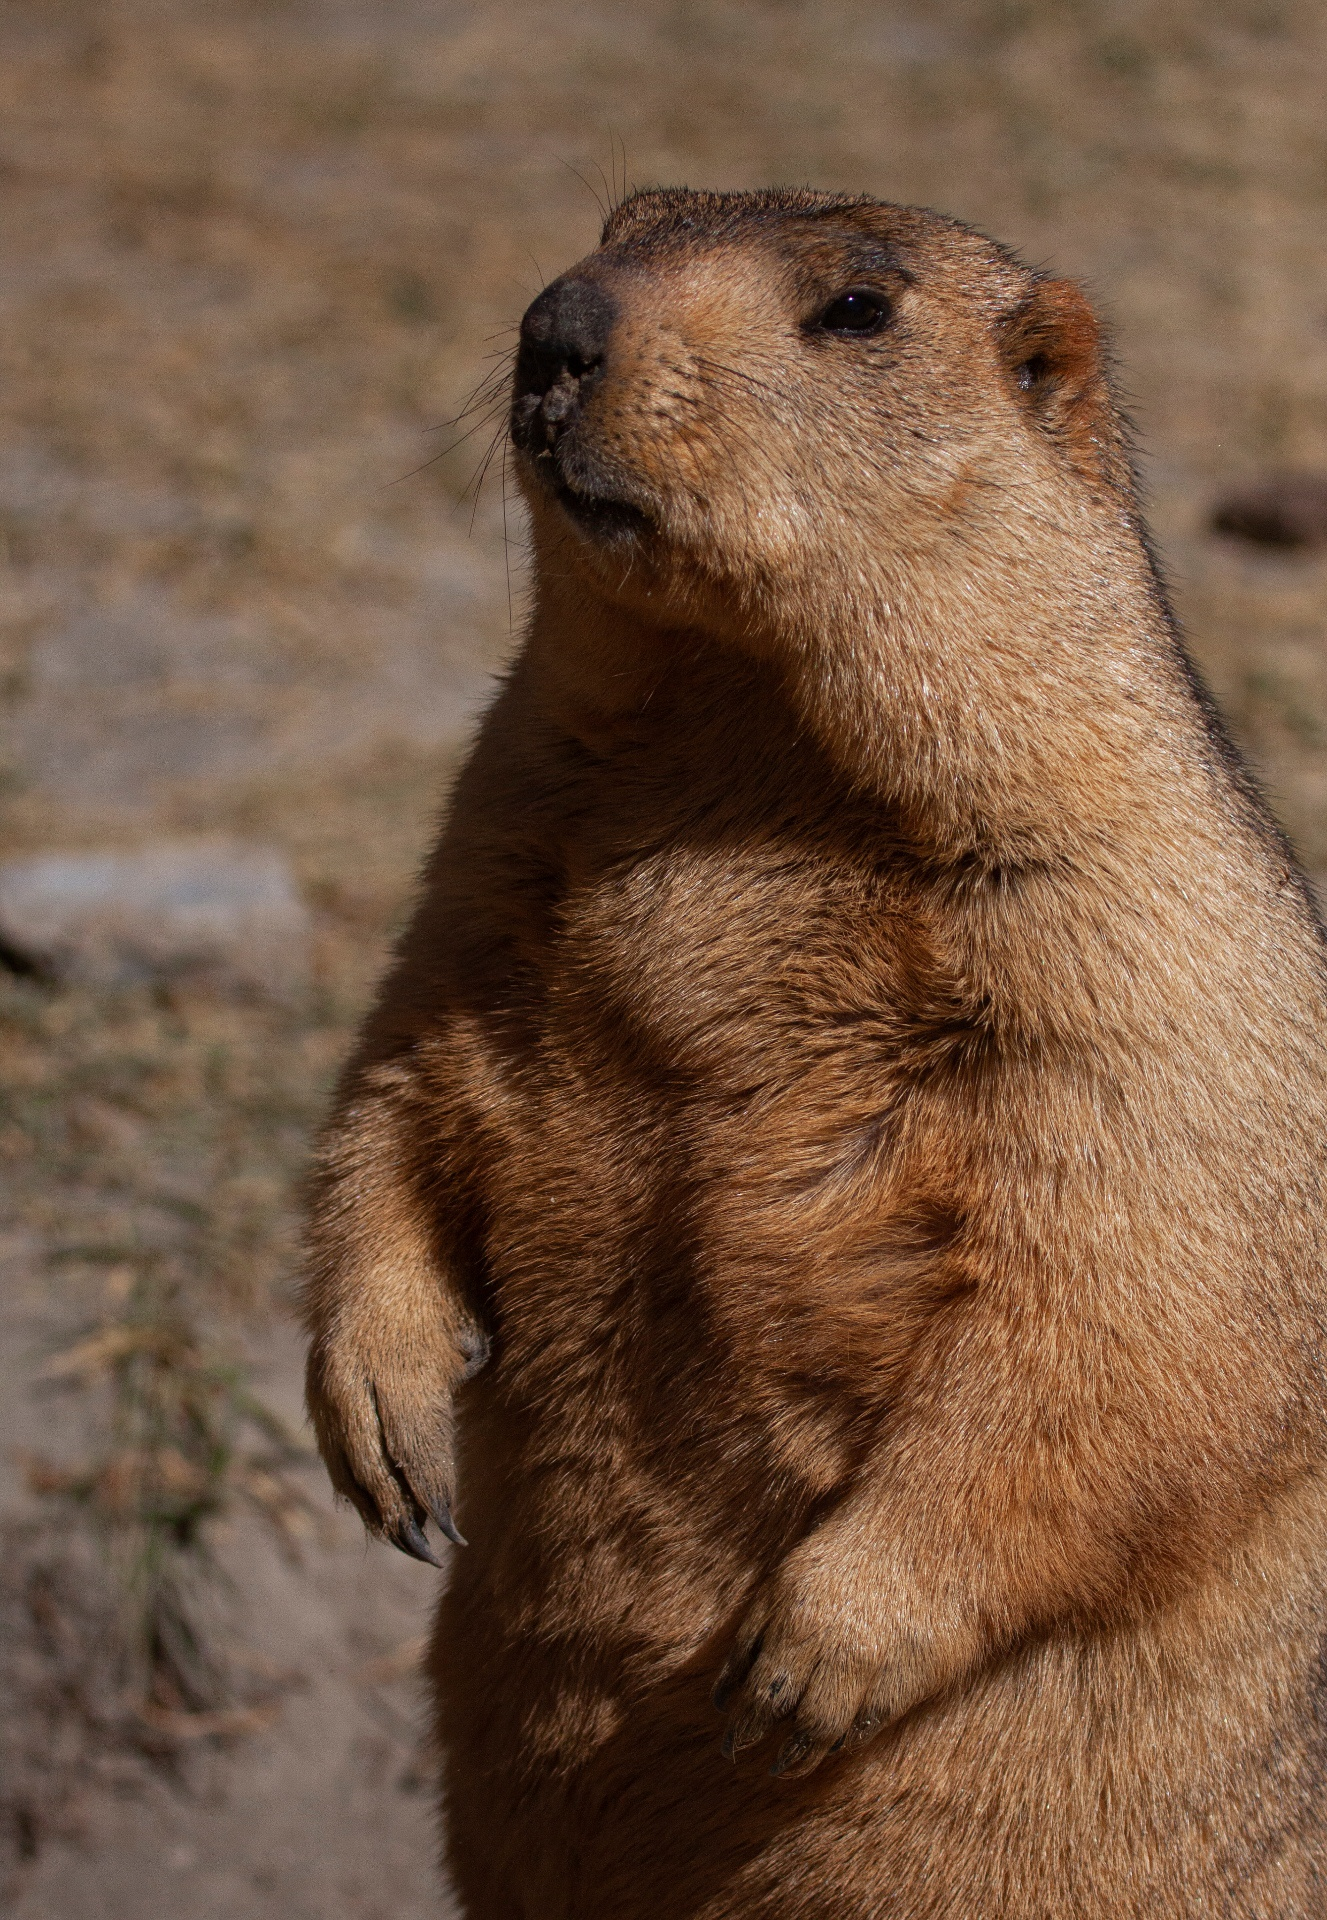 Marmots stand on their hind legs like sentinels outside their burrows, surveying the landscape for any hint of any threat.  Cover image: Himalayan marmots are small, burrow-dwelling mammals found in the Himalayas and the Tibetan Plateau. They are rather skittish and will only head out of their burrows to forage on grasses, lichen, flowers, berries, and roots when they are sure the coast is clear. Photos: Shivang Mehta